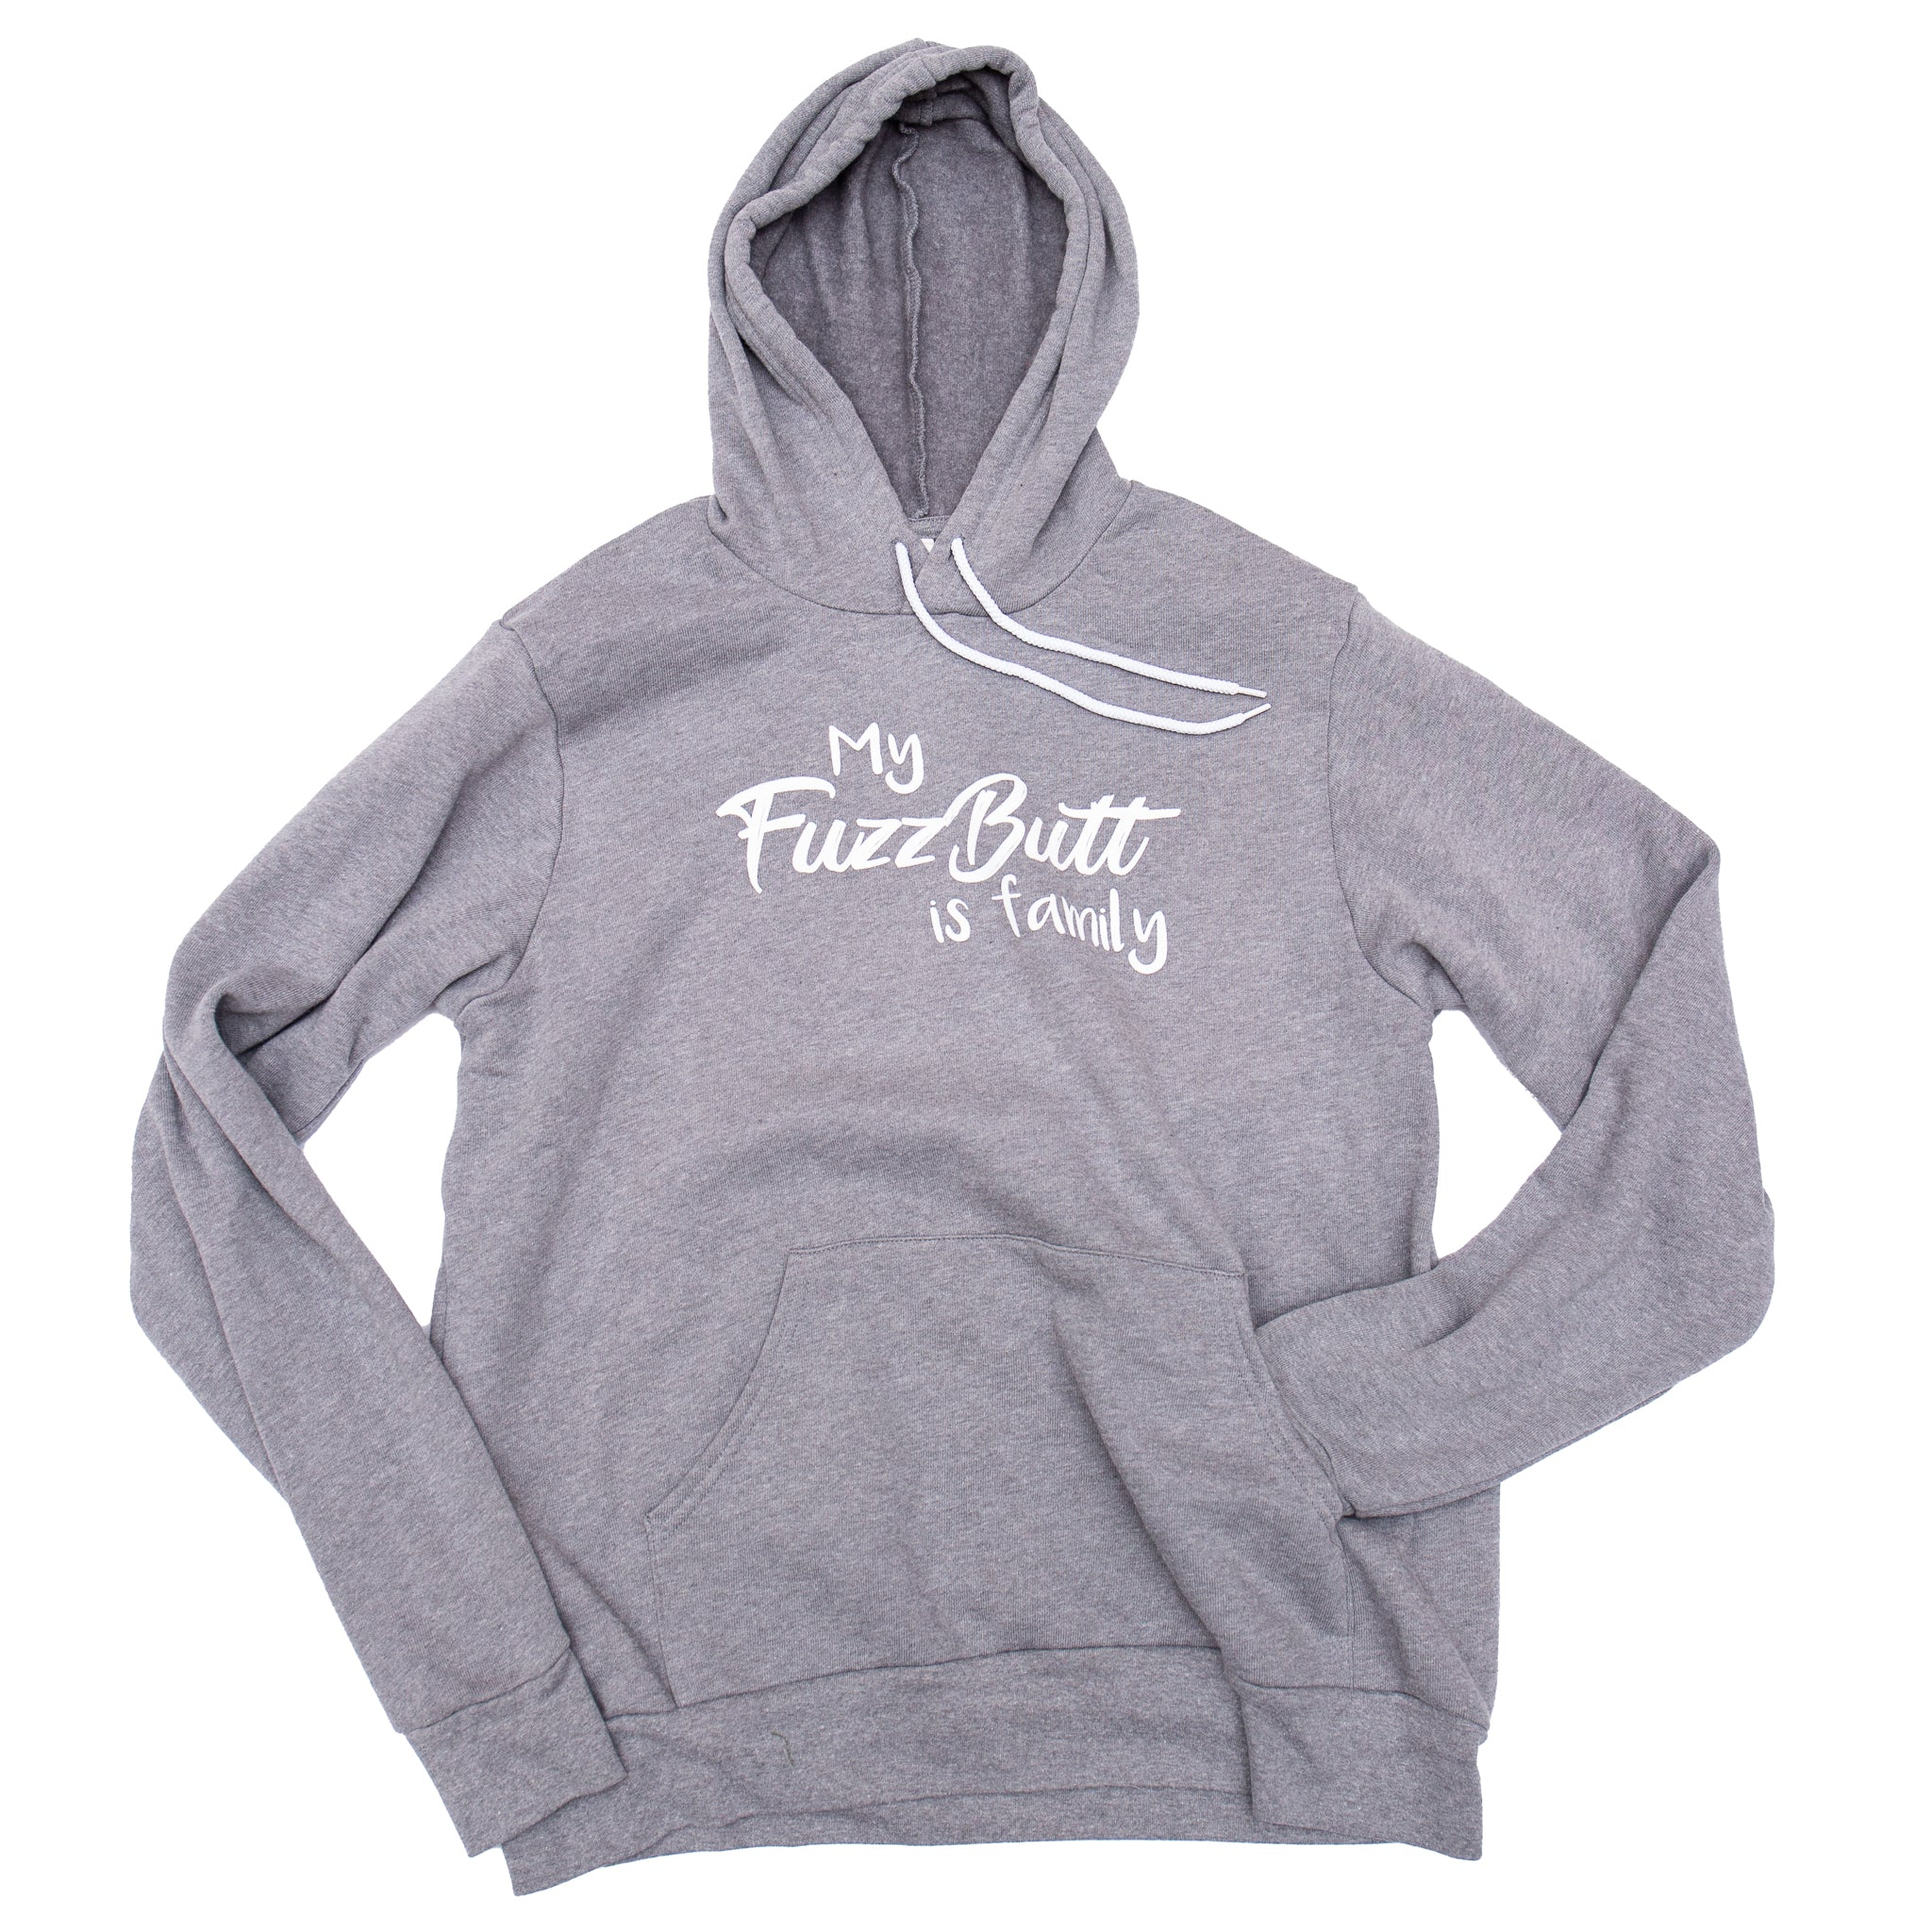 My FuzzButt is Family Grey Hooded Sweatshirt